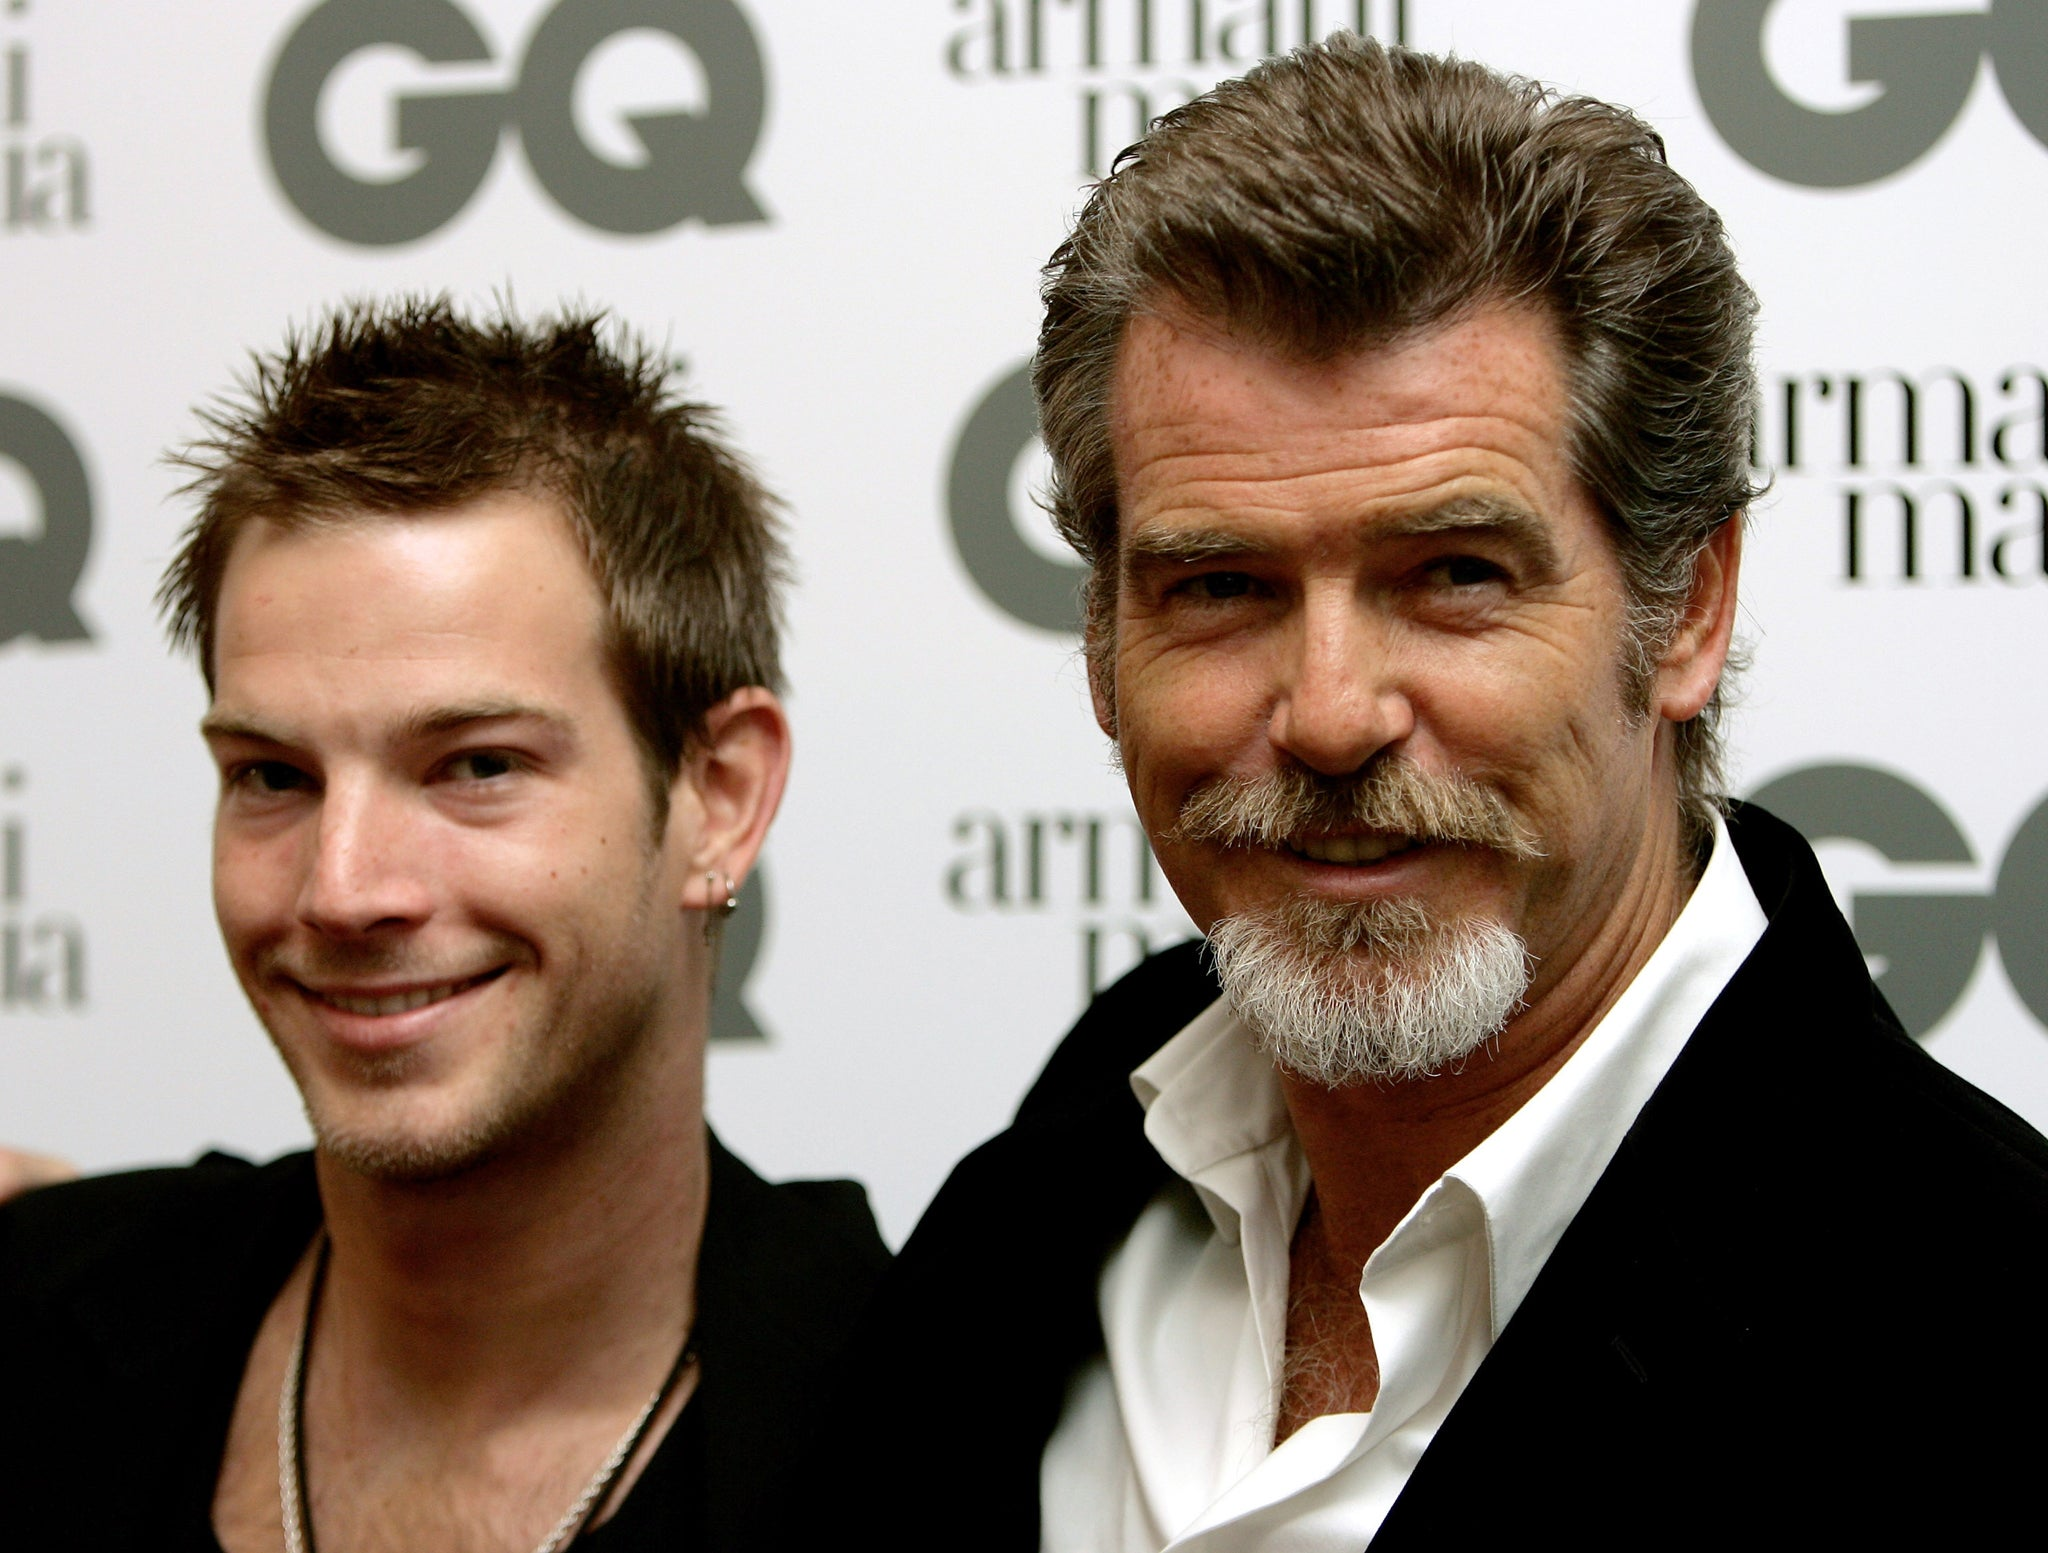 sean brosnan heightsean brosnan ivanka trump, sean brosnan imdb, sean brosnan instagram, sean brosnan (actor), sean brosnan daughter, sean brosnan wiki, sean brosnan dj, sean brosnan sanja banic, sean brosnan wikipedia, sean brosnan accident, sean brosnan facebook, sean brosnan height, sean brosnan photography, sean brosnan wedding photos, sean brosnan age, sean brosnan lispole, sean brosnan twitter, sean brosnan 2015, sean brosnan runner, sean brosnan car crash